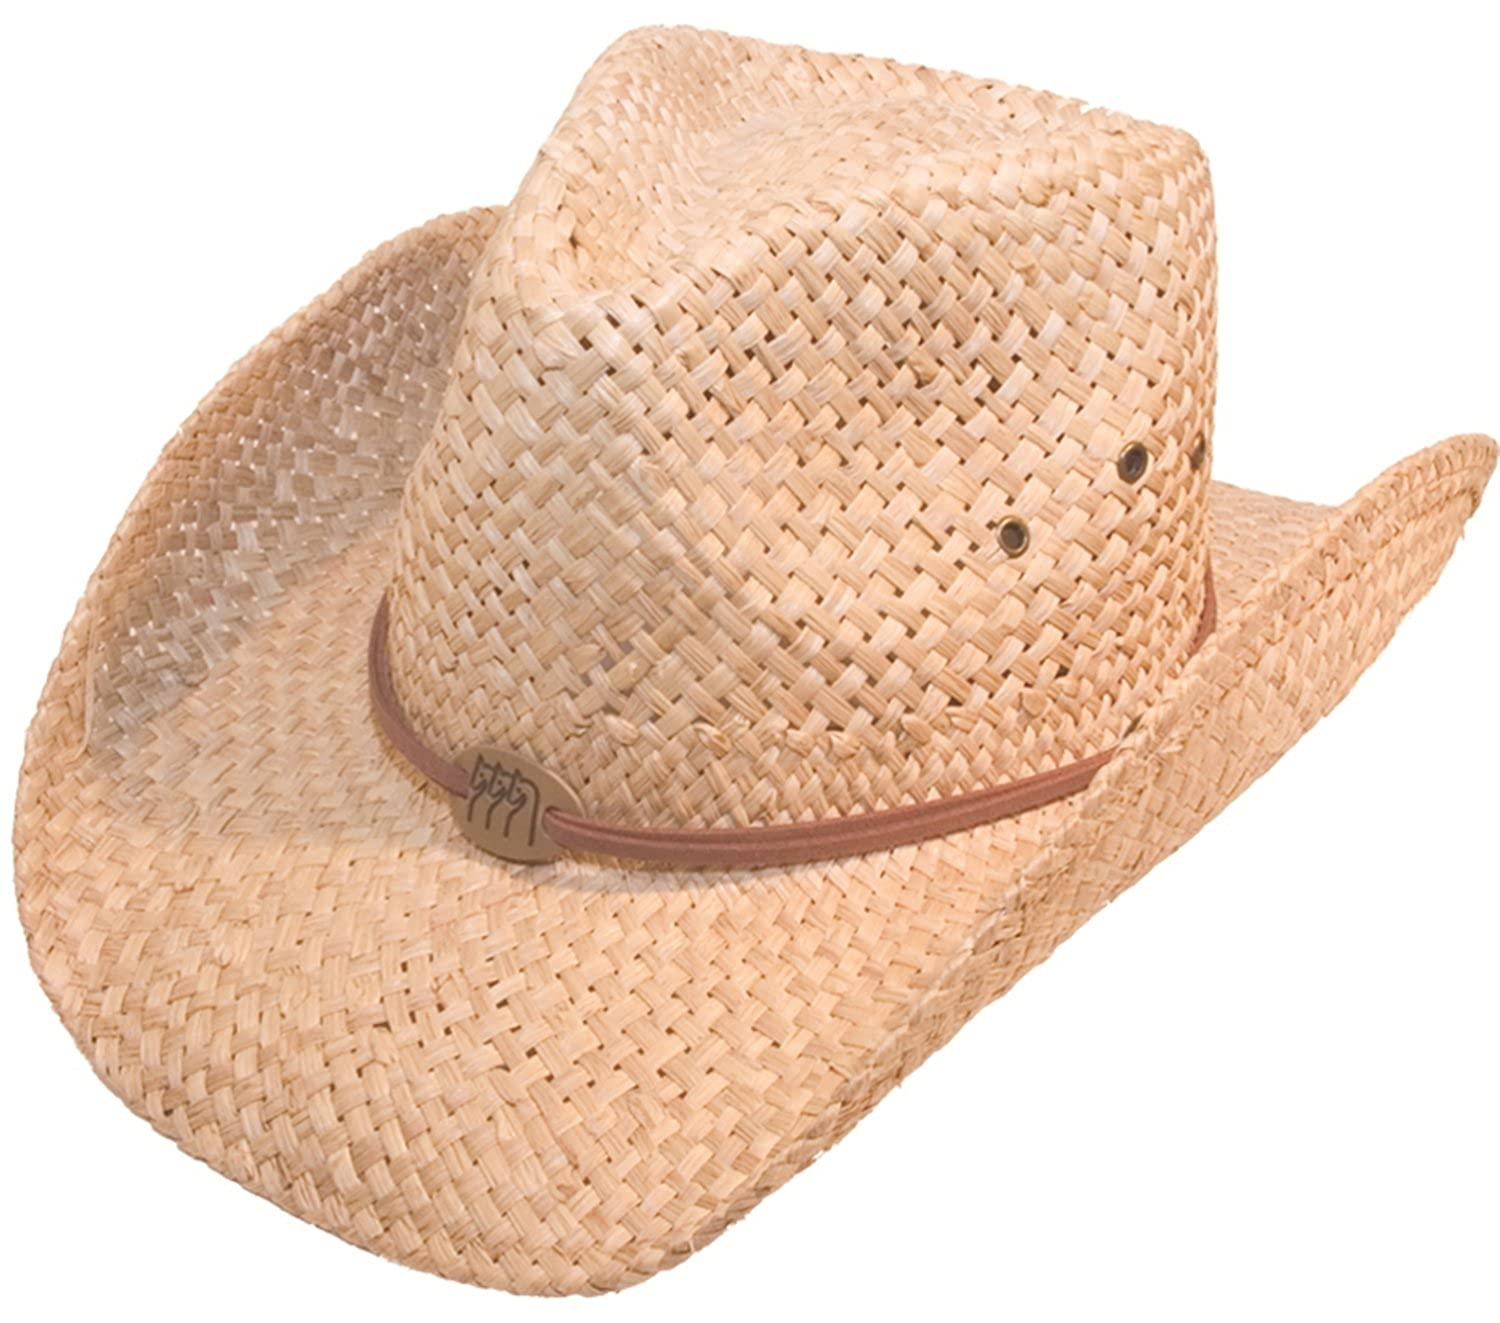 Mens or Womens Straw Cowboy Hat Wide Brimmed Stetson Sun Cap Fedora Trilby Hat Beige